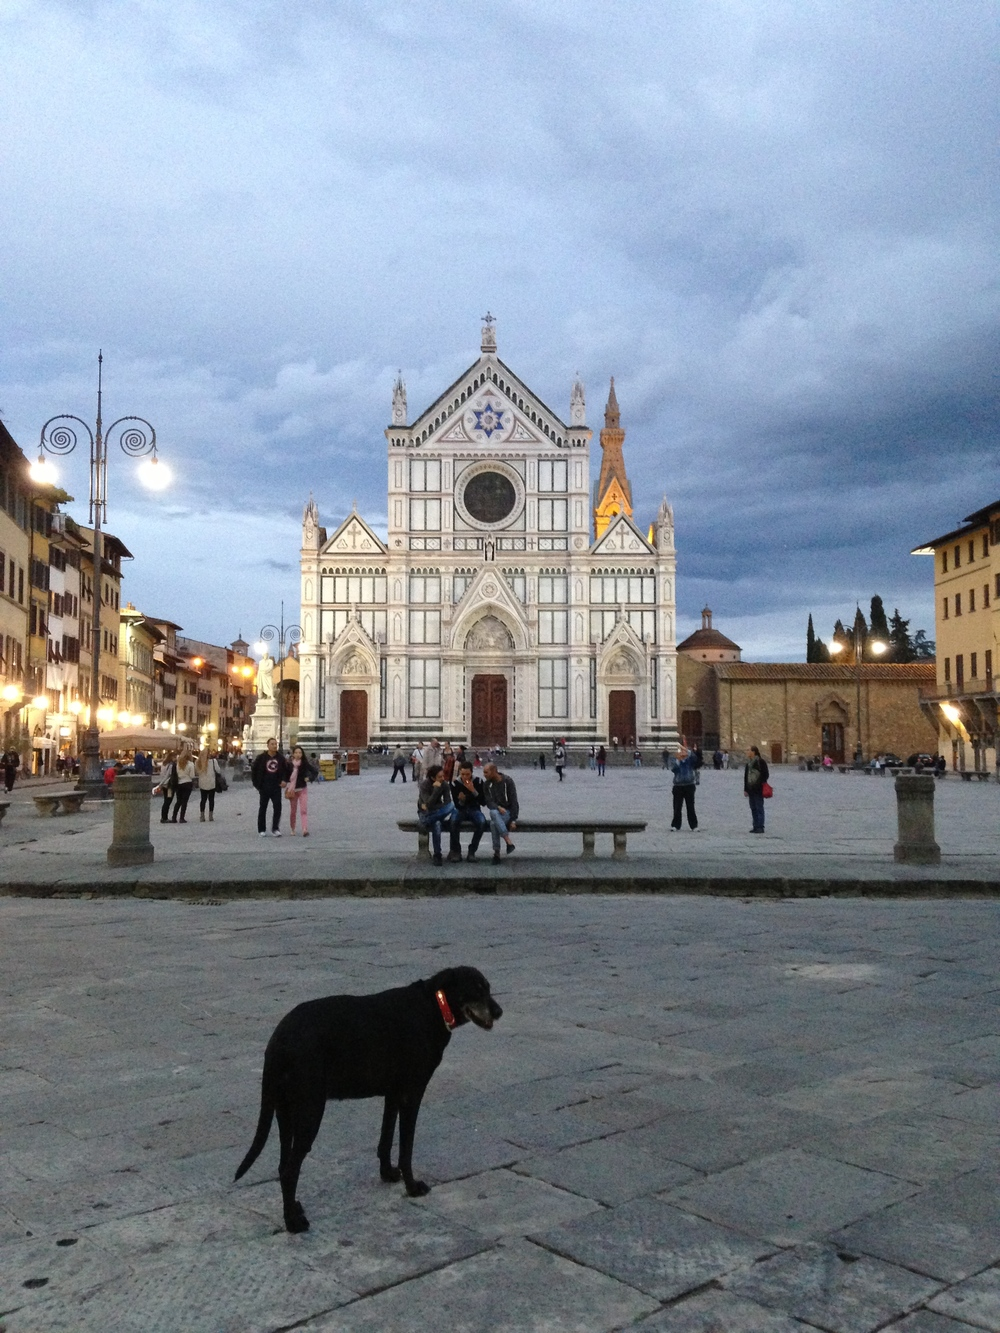 Dog in the piazza, by Mary Warner.